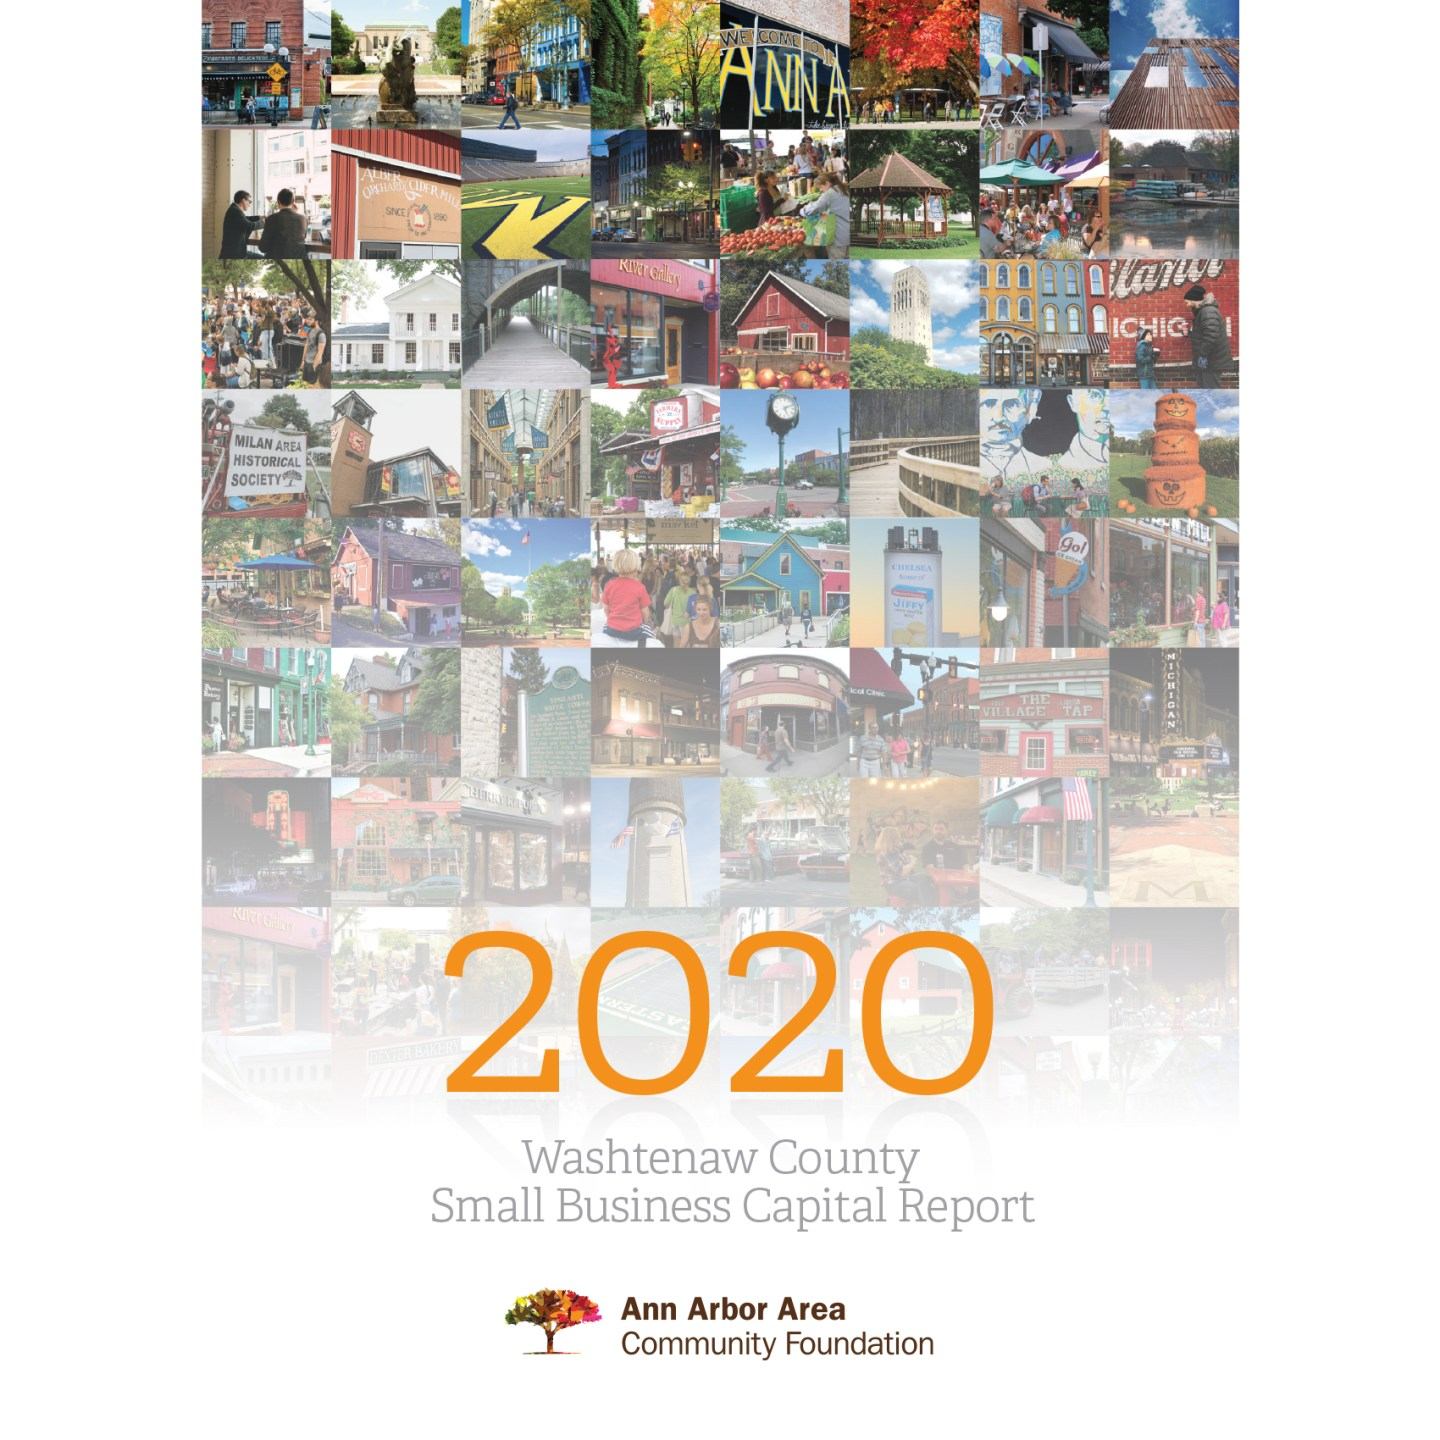 sq cover graphic - 2020 Washtenaw County Small Business Capital Report - final version from EntryPoint